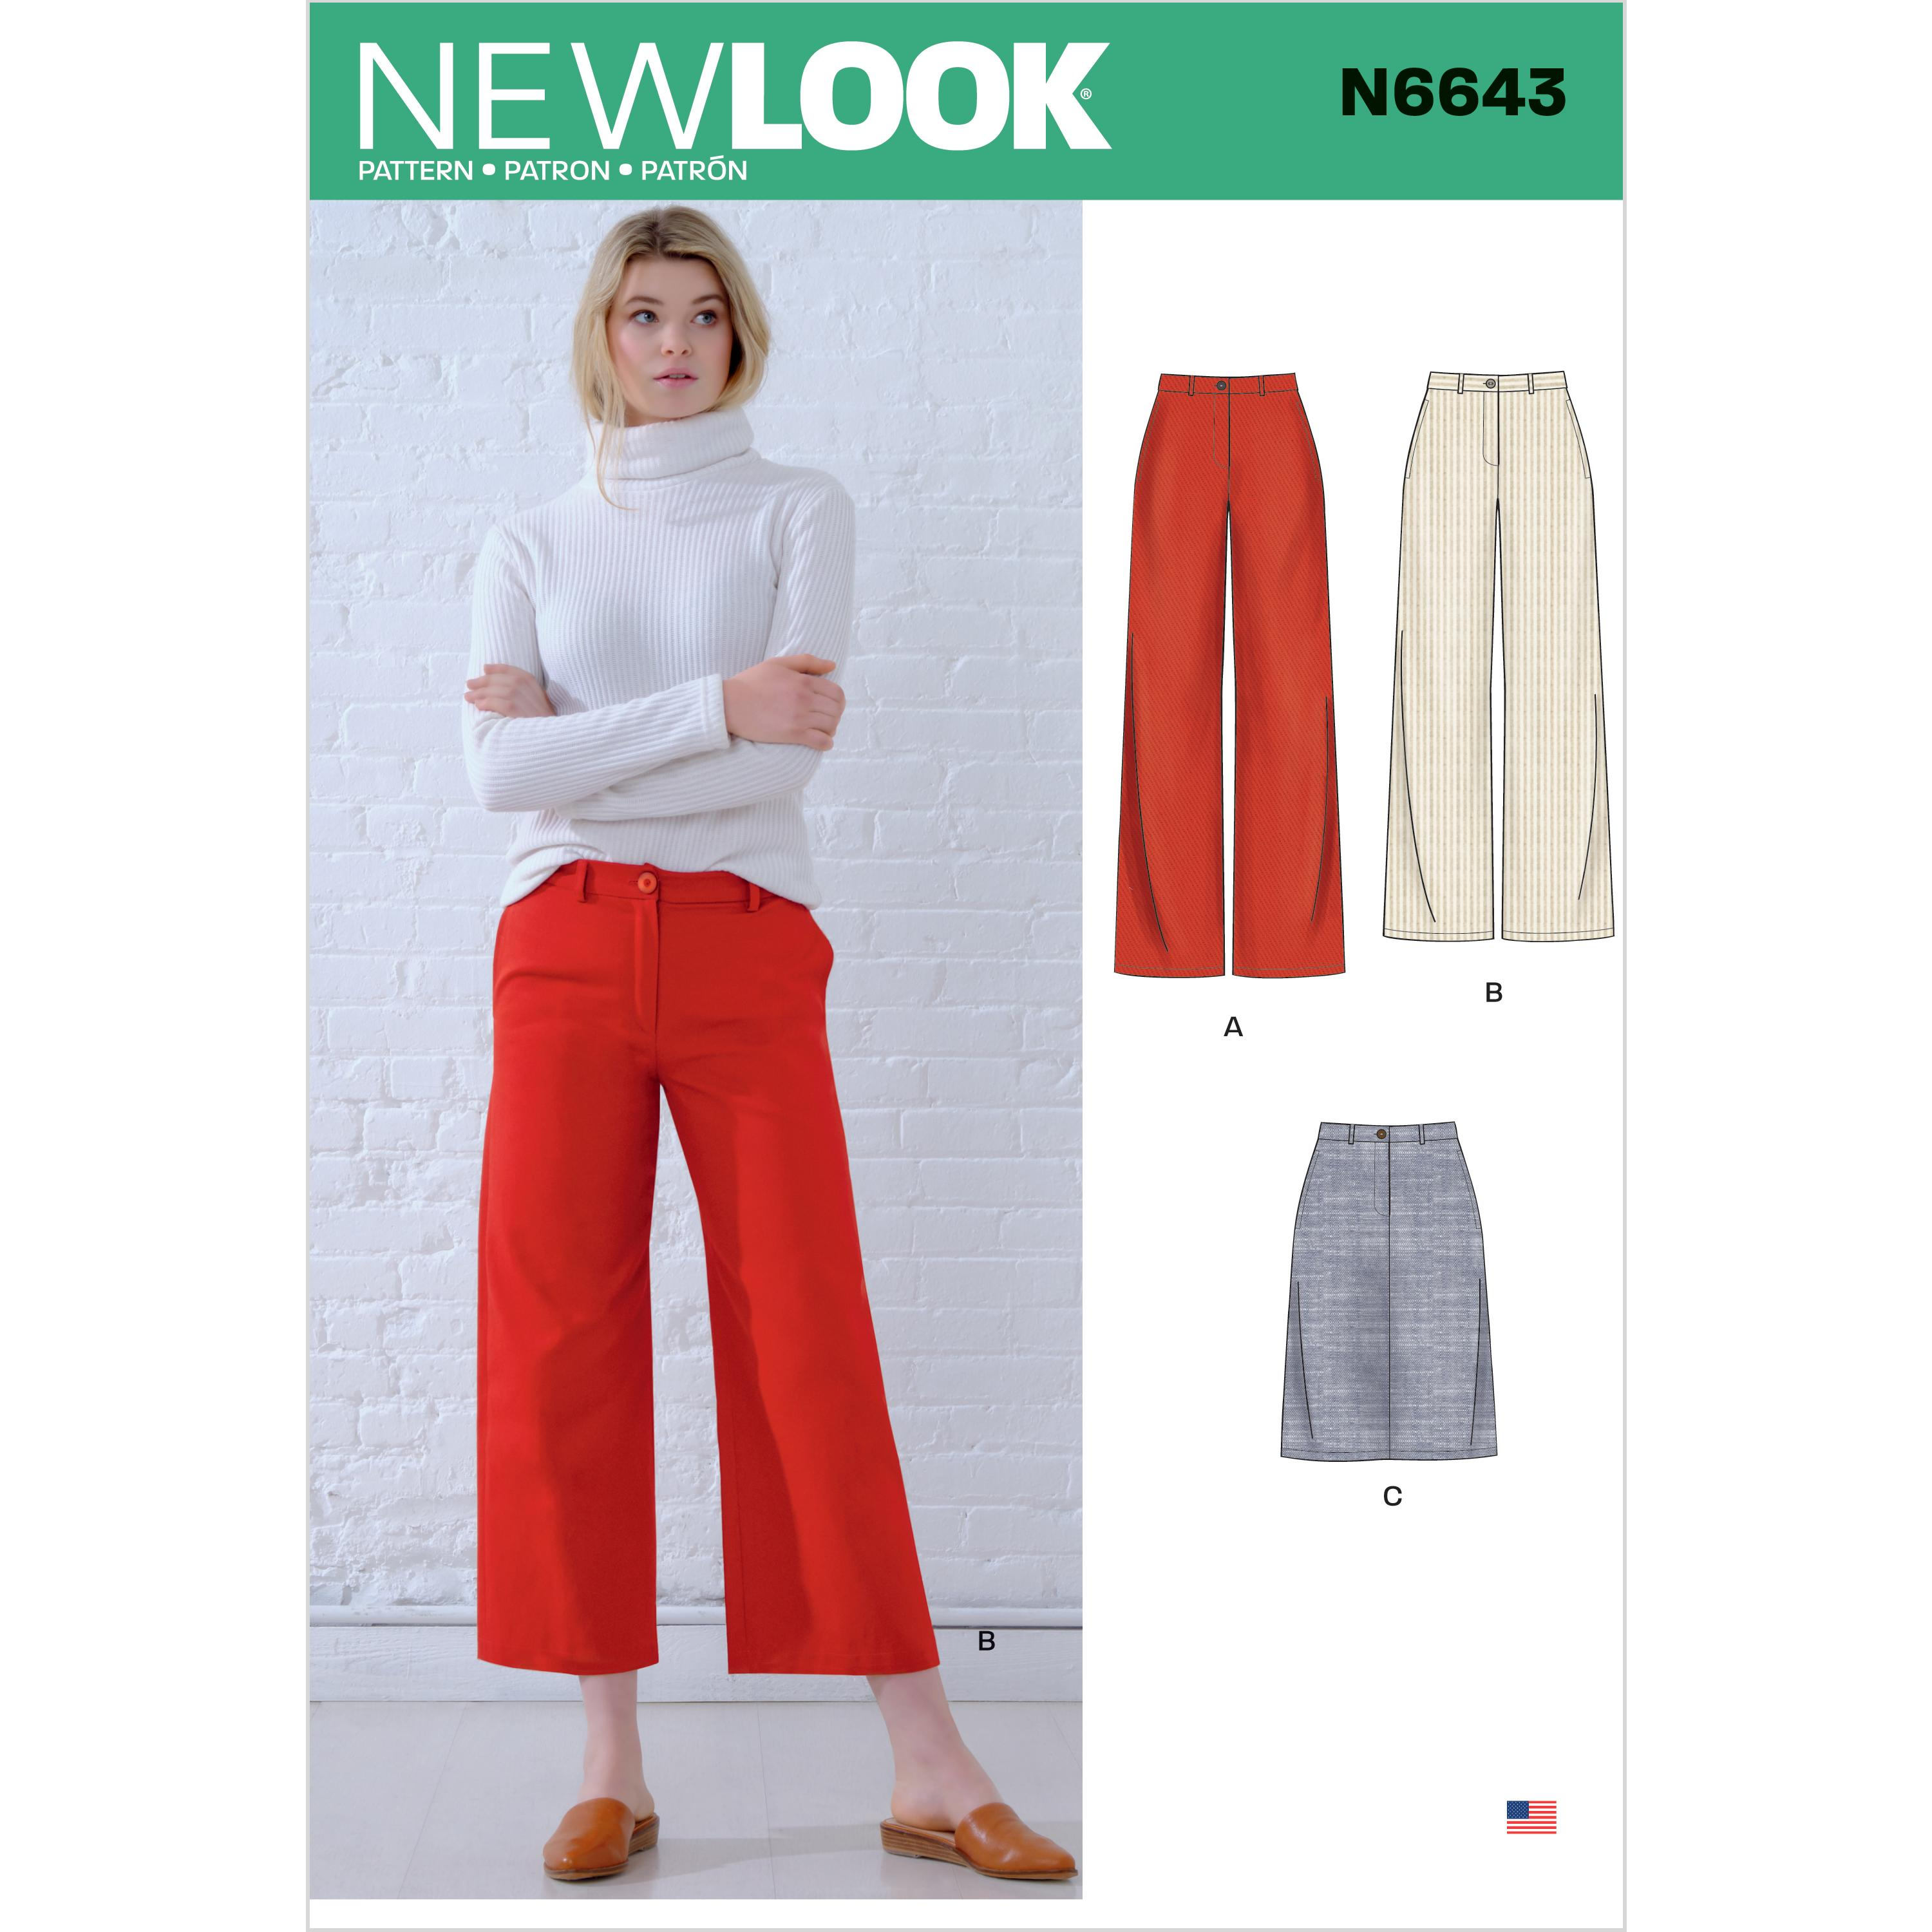 New Look Sewing Pattern N6643 Misses' Wide Leg Pants and Skirt